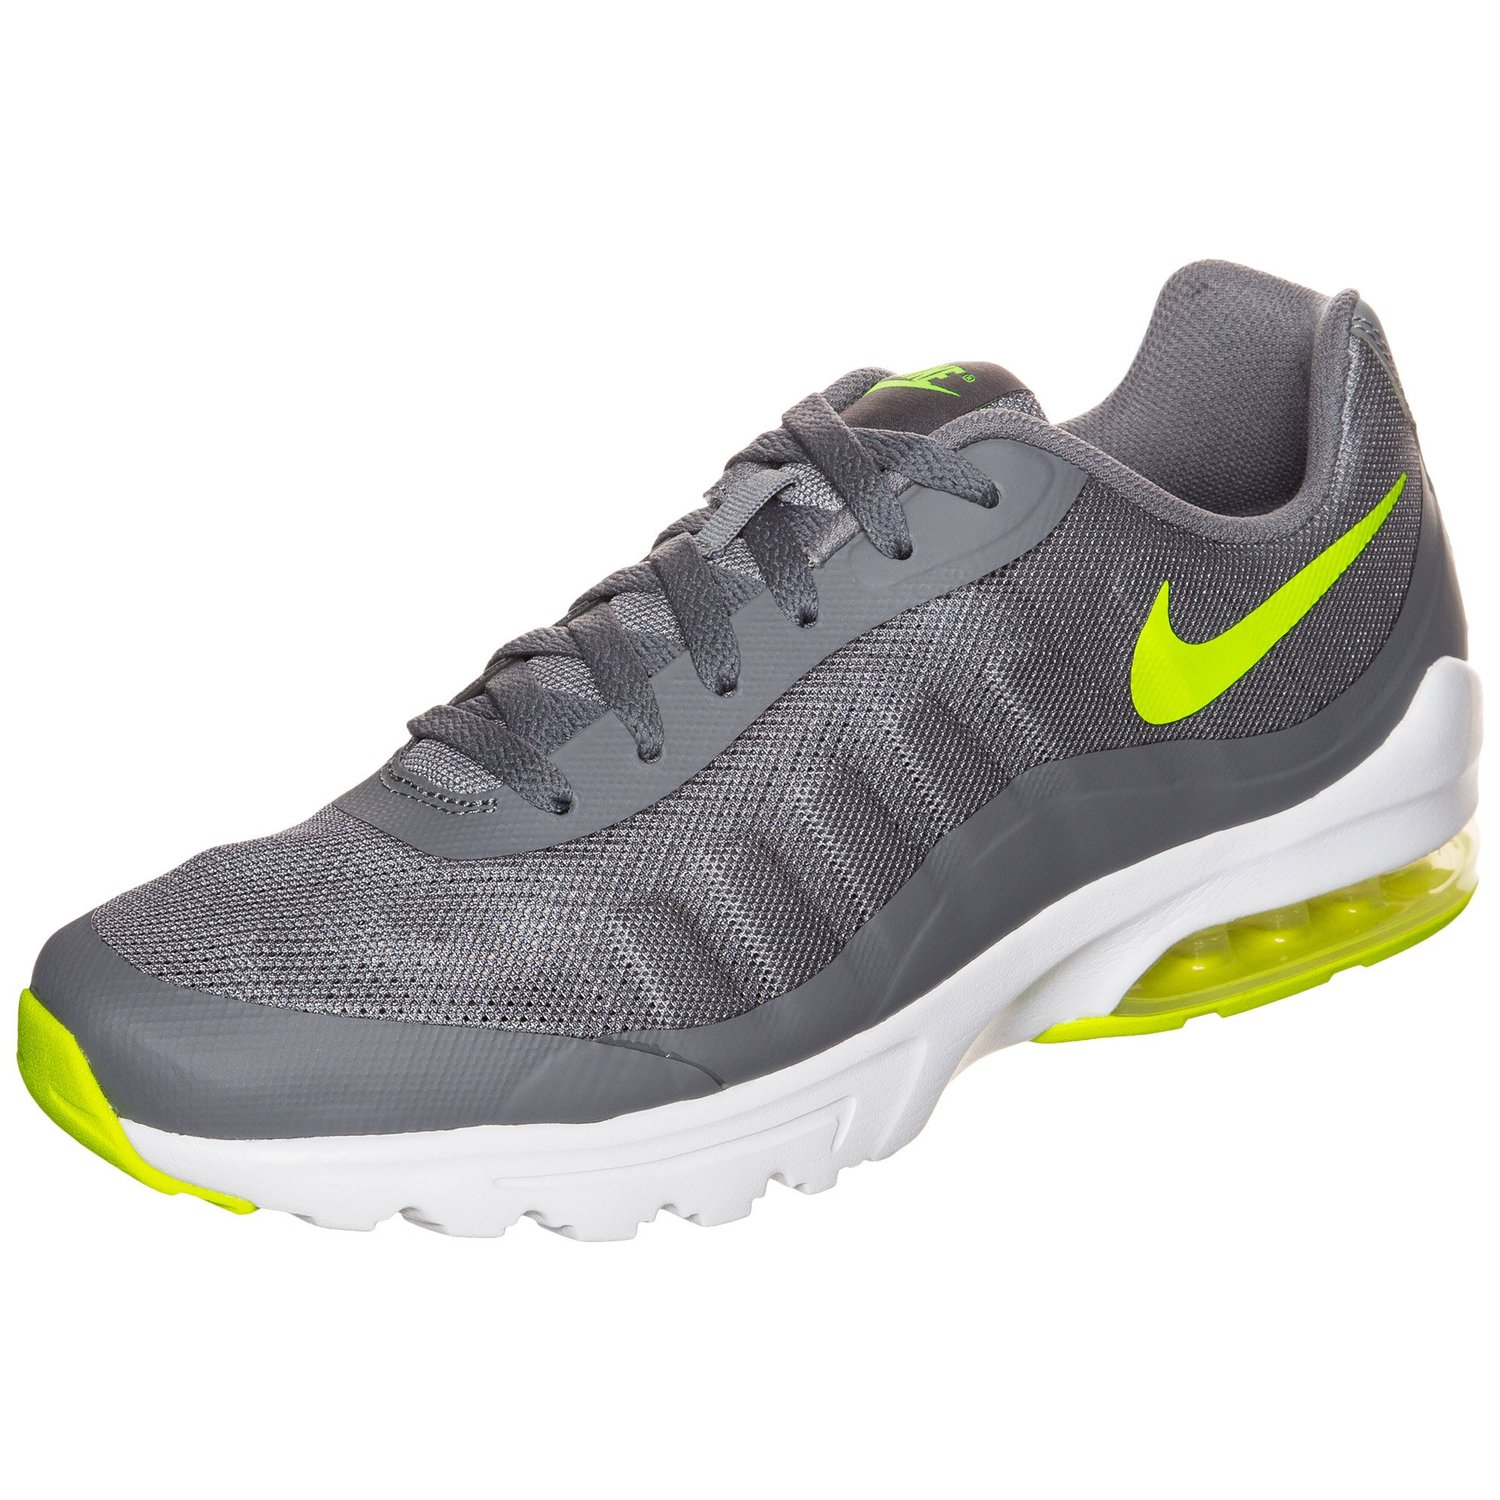 outlet store e0c16 9d4b6 Get Quotations · Mens Nike Air Max Invigor Cool Grey Volt-White